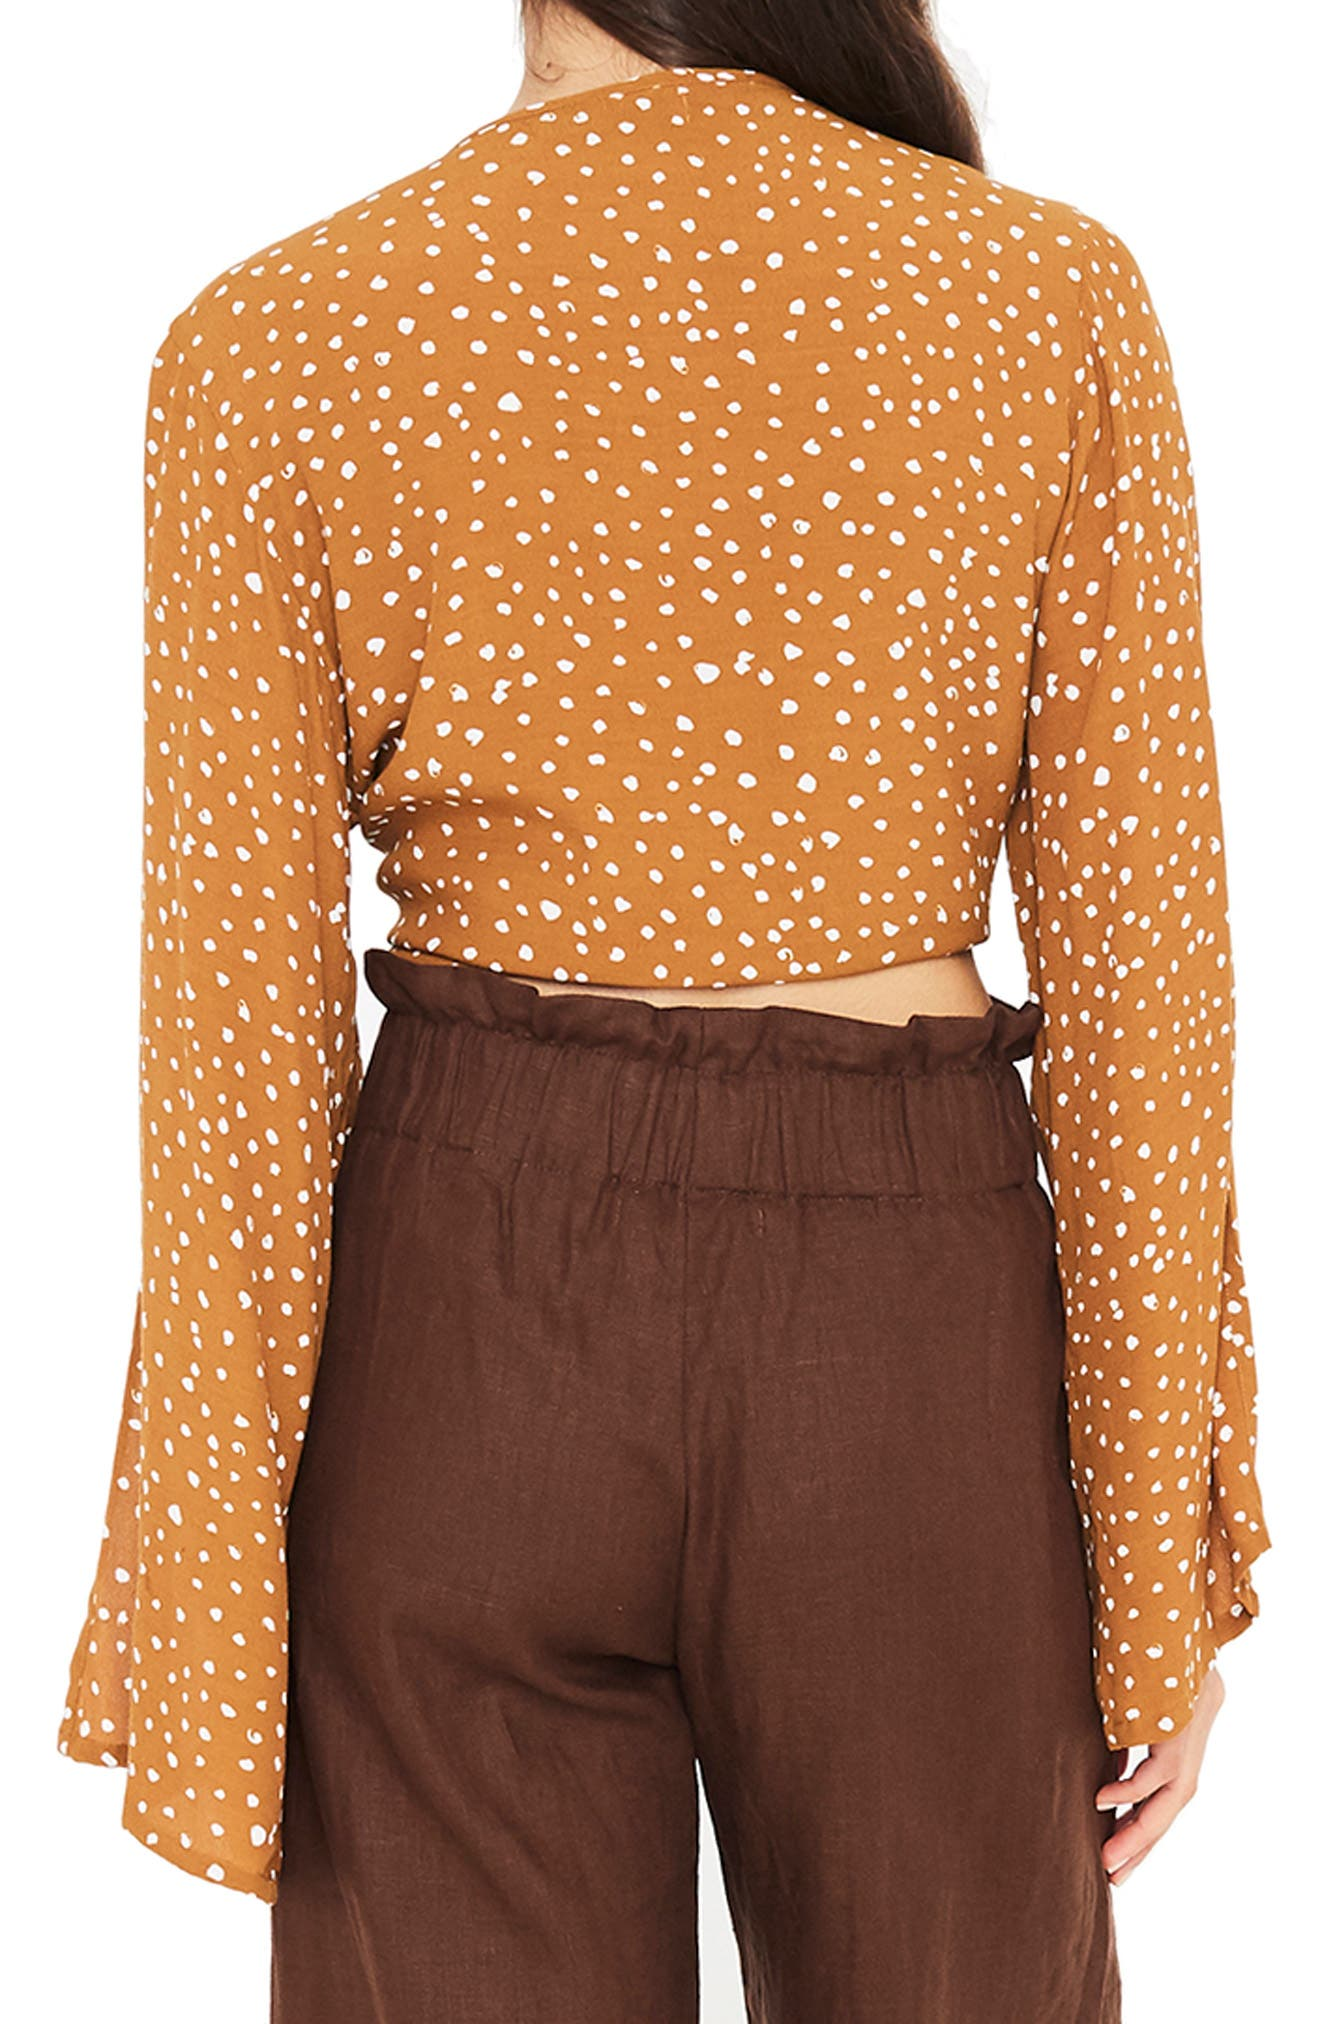 Teguise Tie Hem Crop Top,                             Alternate thumbnail 2, color,                             NOEL PRINT CARMEL